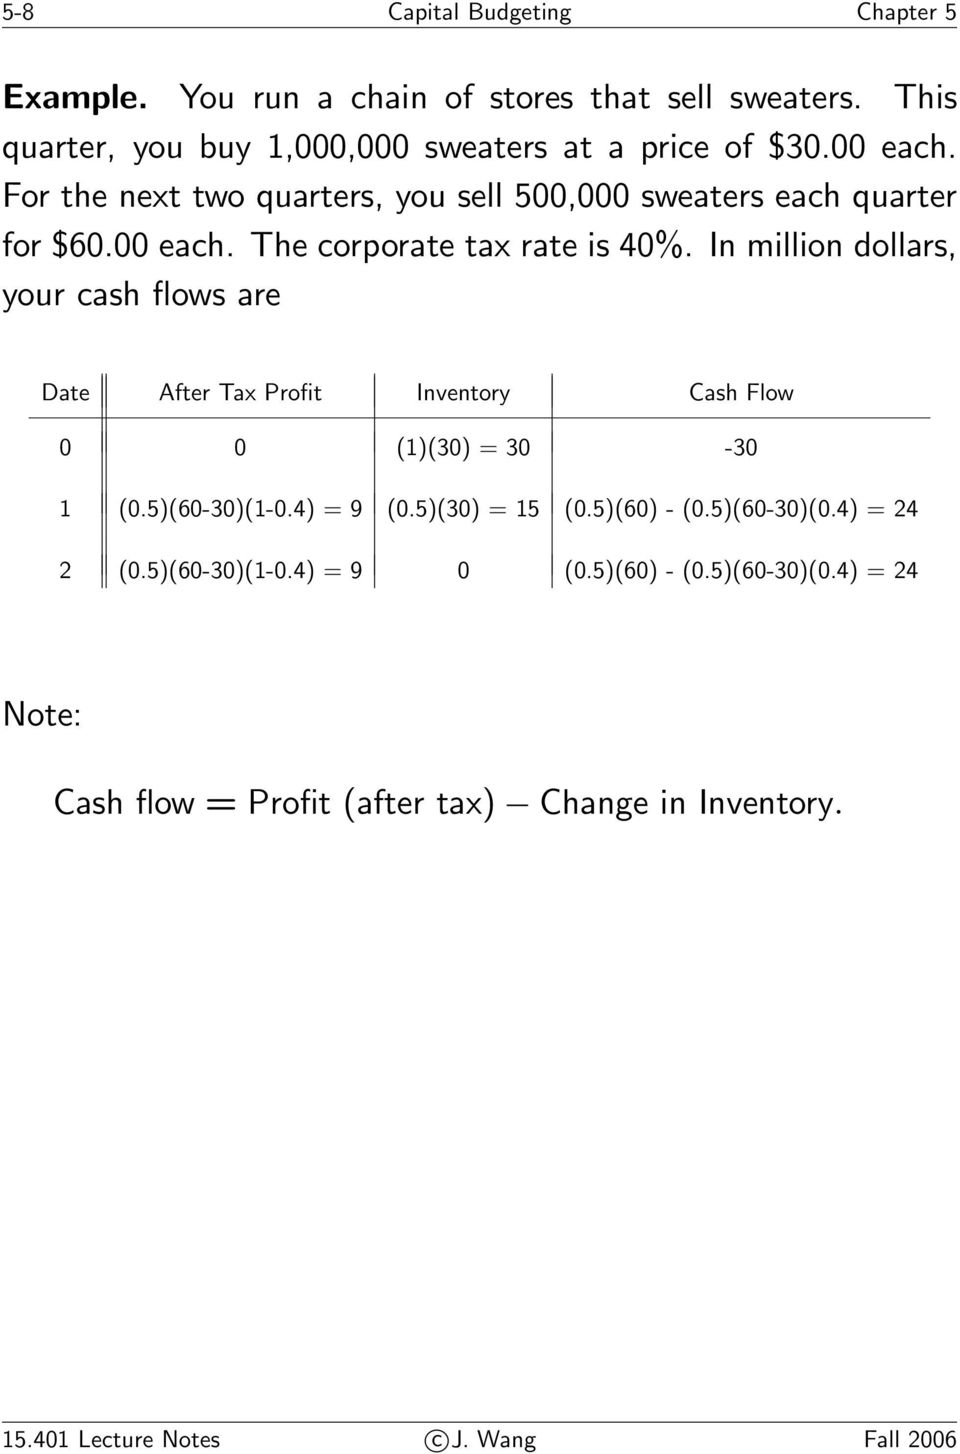 In million dollars, your cash flows are Date After Tax Profit Inventory Cash Flow 0 0 (1)(30) = 30-30 1 (0.5)(60-30)(1-0.4) = 9 (0.5)(30) = 15 (0.